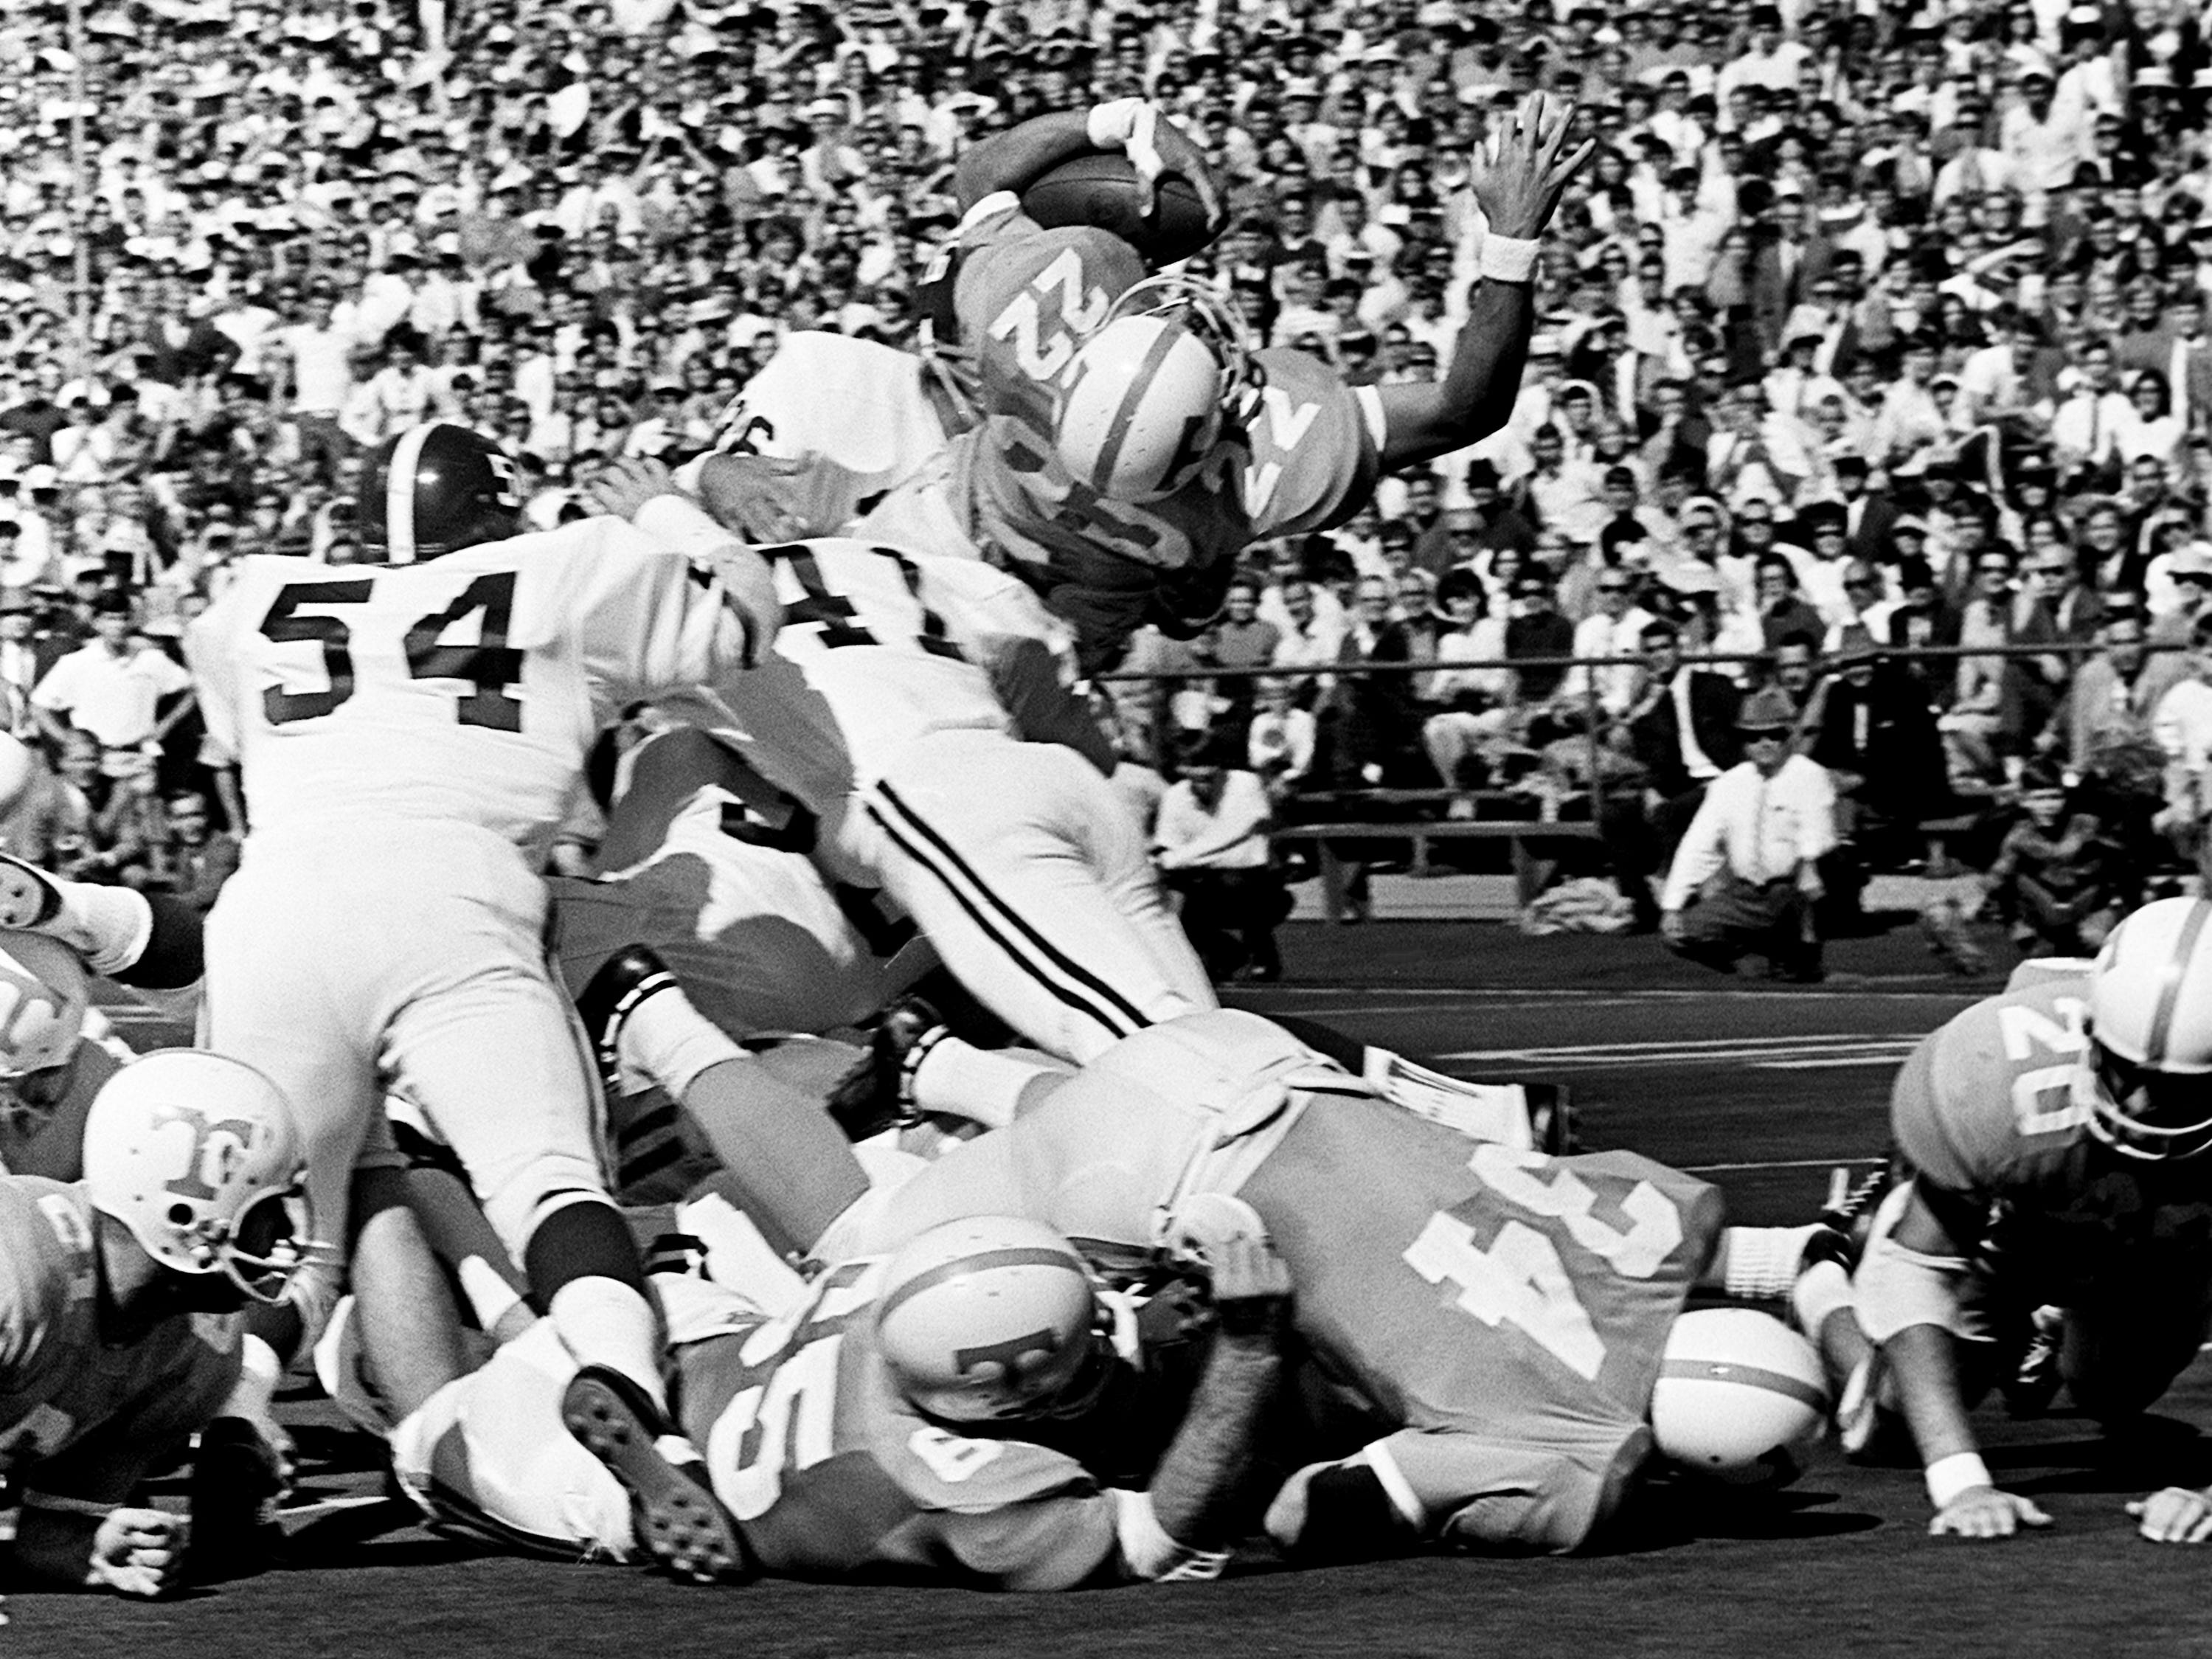 Tennessee senior back Richmond Flowers (22) dives over the goal line from the one-yard line for the only touchdown of the game for the Vols against Alabama at Neyland Stadium Oct. 19, 1968.